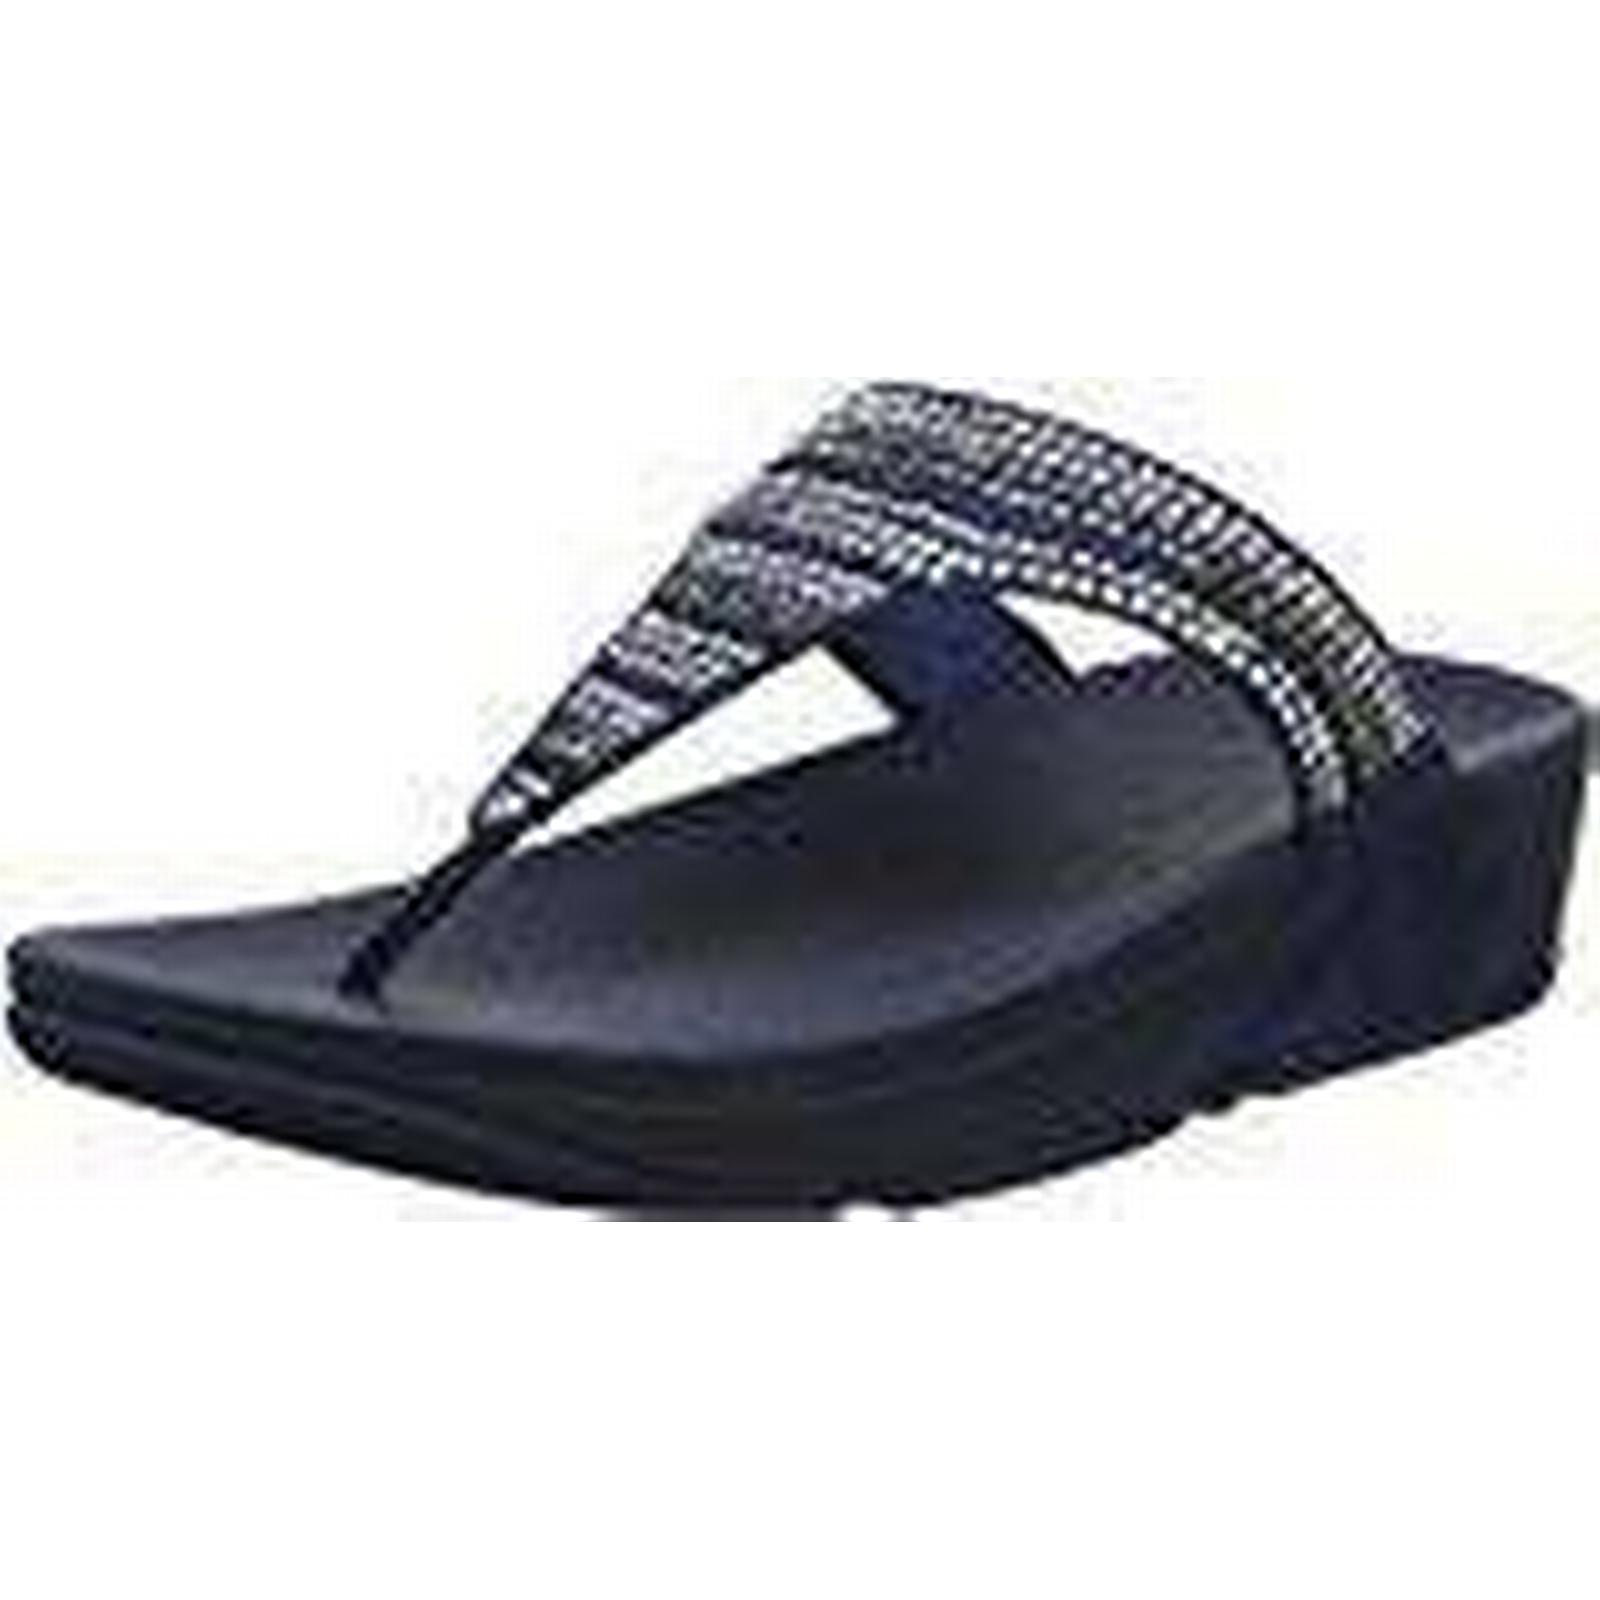 Fitflop Women's Strobe Luxe Toe-Thong Navy), Sandals Open, Blue (Midnight Navy), Toe-Thong 7 UK 41 EU 4bc403